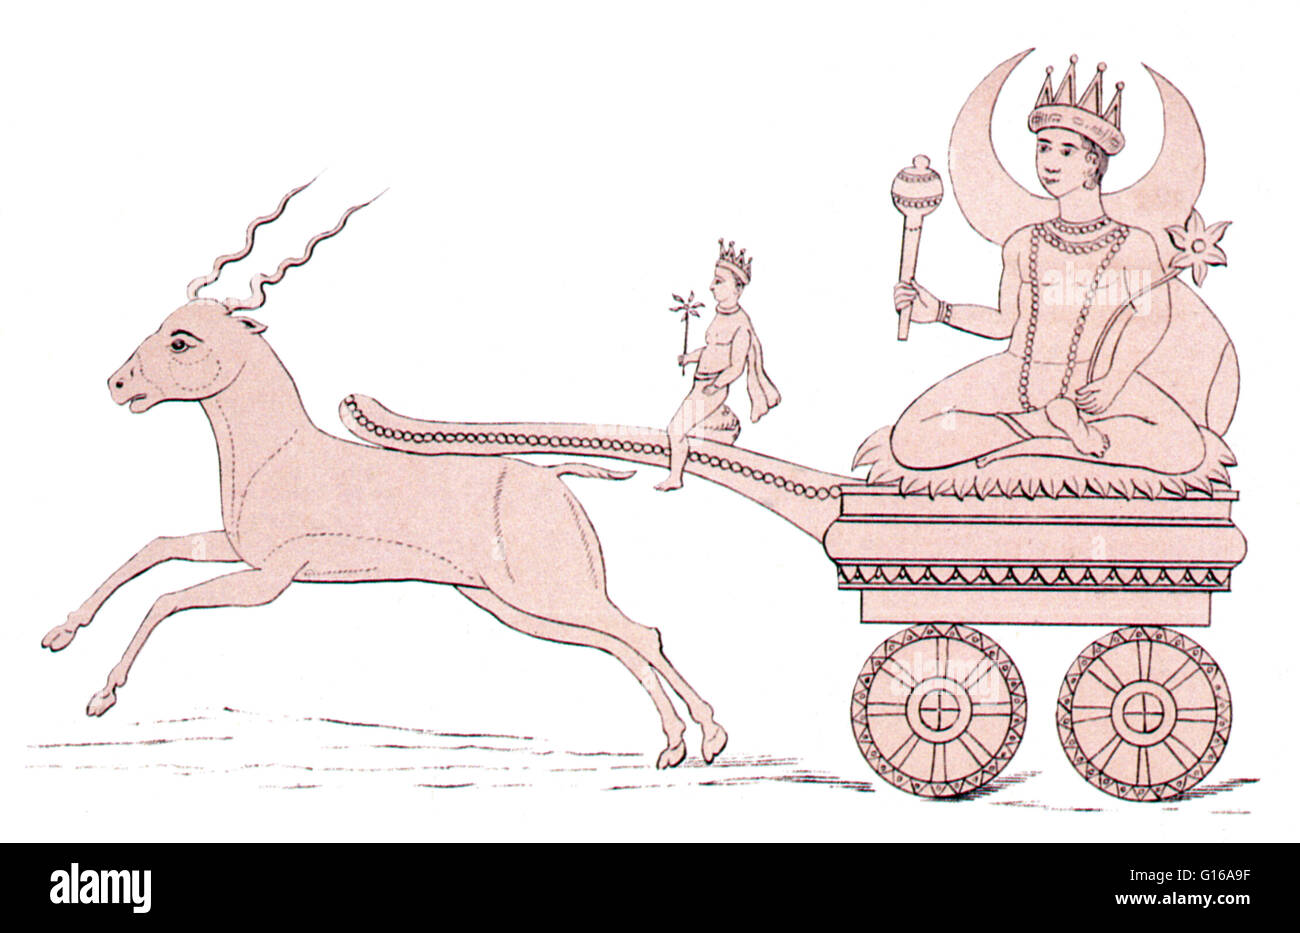 Soma rides a chariot drawn by an antelope. Soma is a very difficult deity for many outside of India to comprehend. - Stock Image